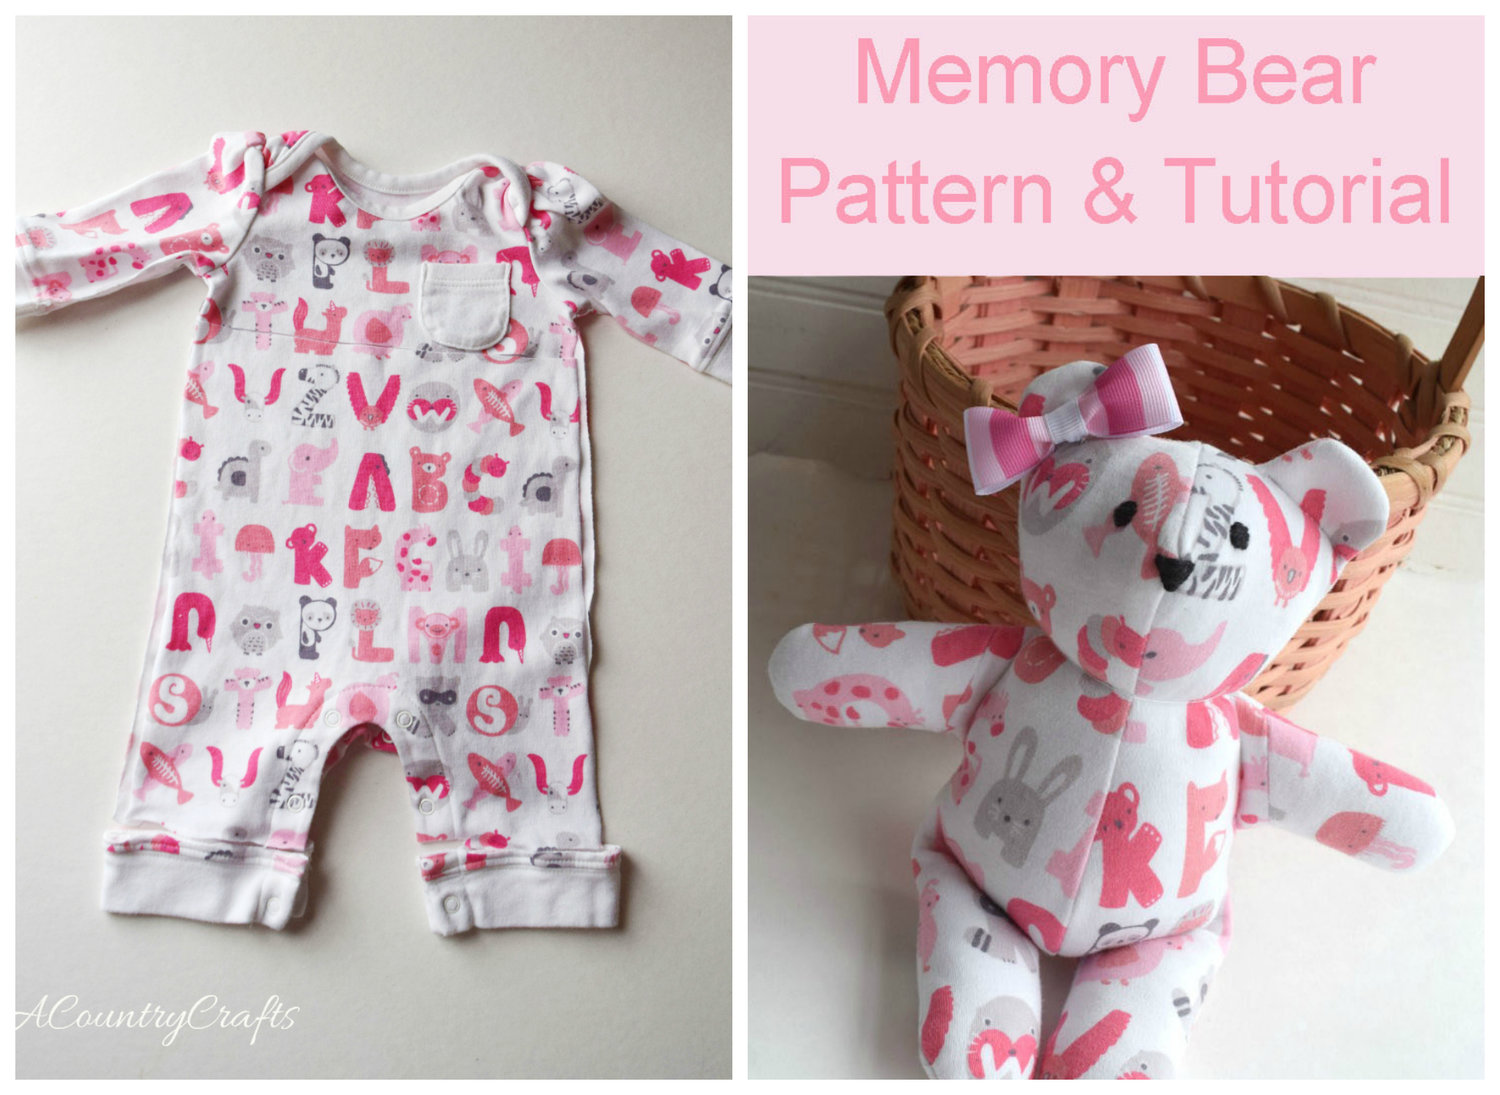 photo regarding Memory Bear Sewing Pattern Free Printable named 20+ of the cutest teddy endure sewing designs - Swoodson Claims